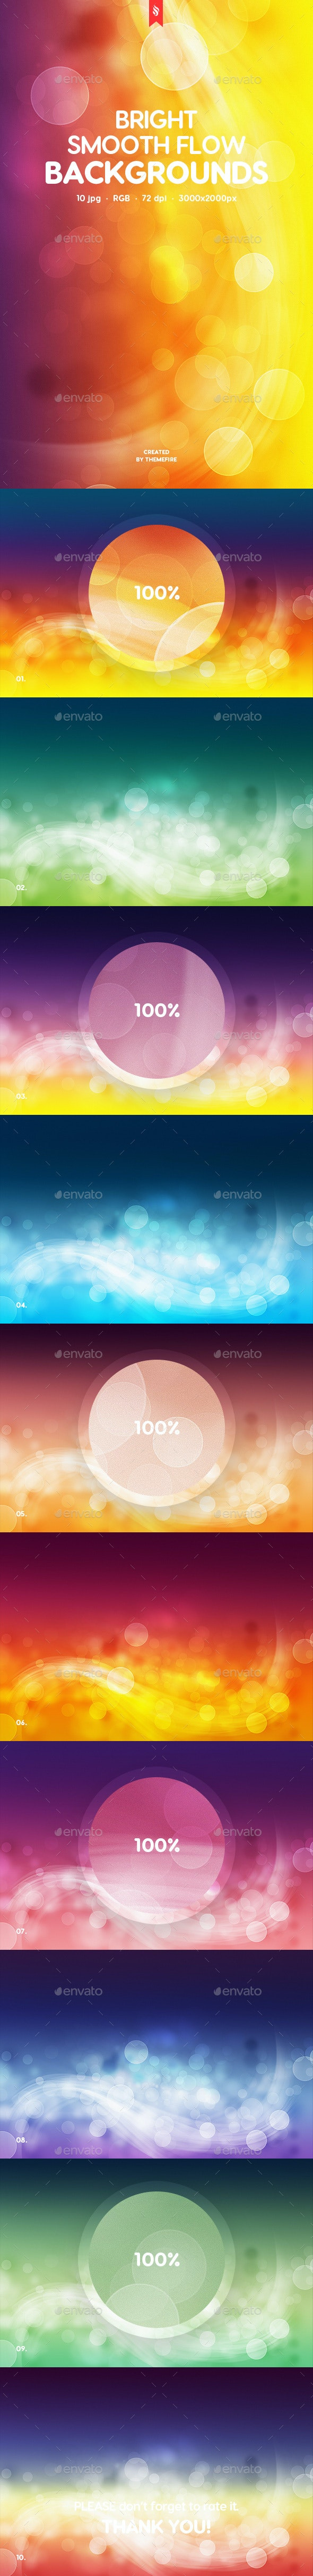 Abstract Bright Smooth Flow Backgrounds - Abstract Backgrounds